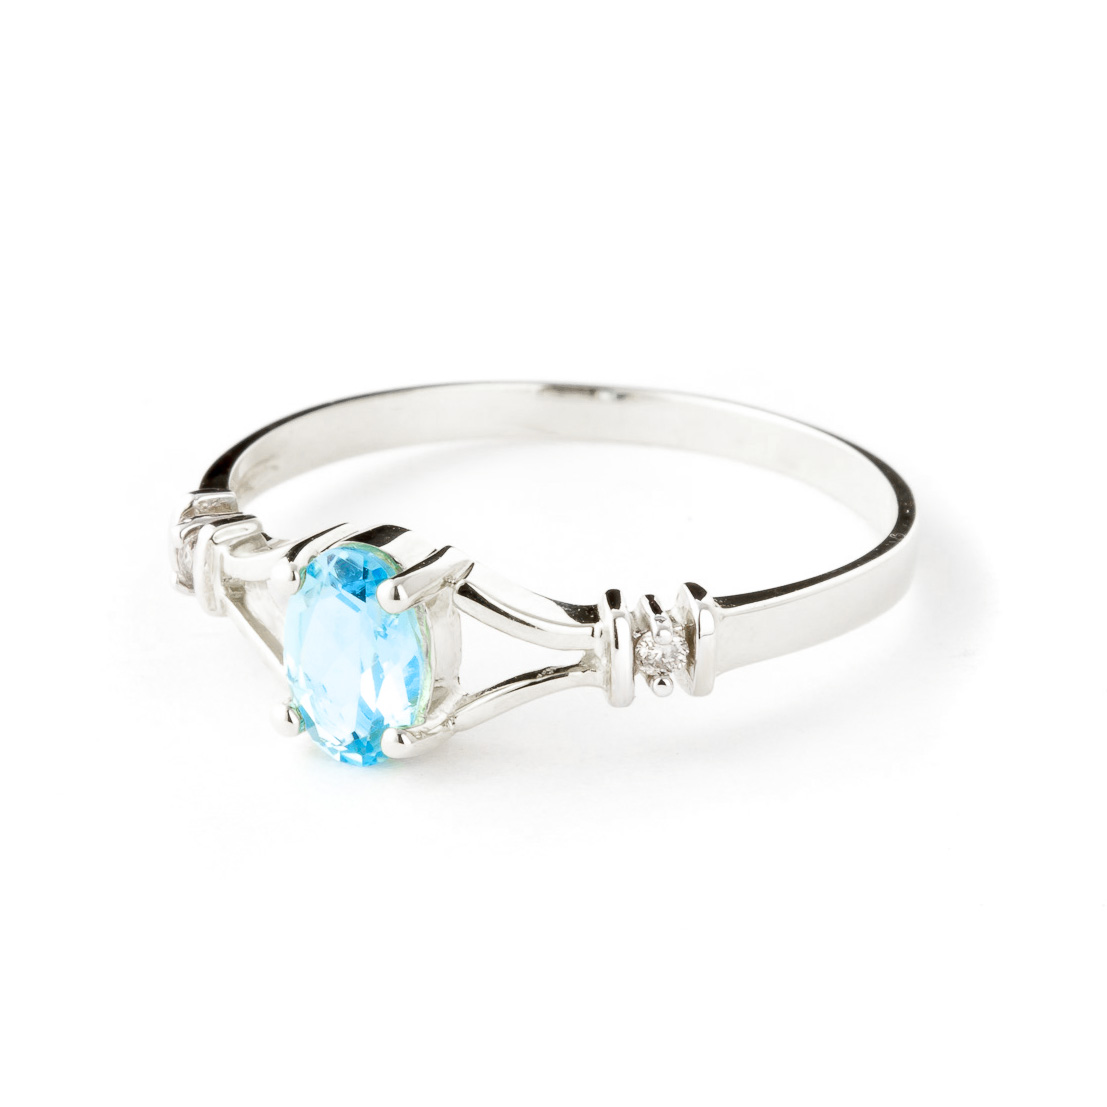 Blue Topaz and Diamond Aspire Ring 0.45ct in 14K White Gold